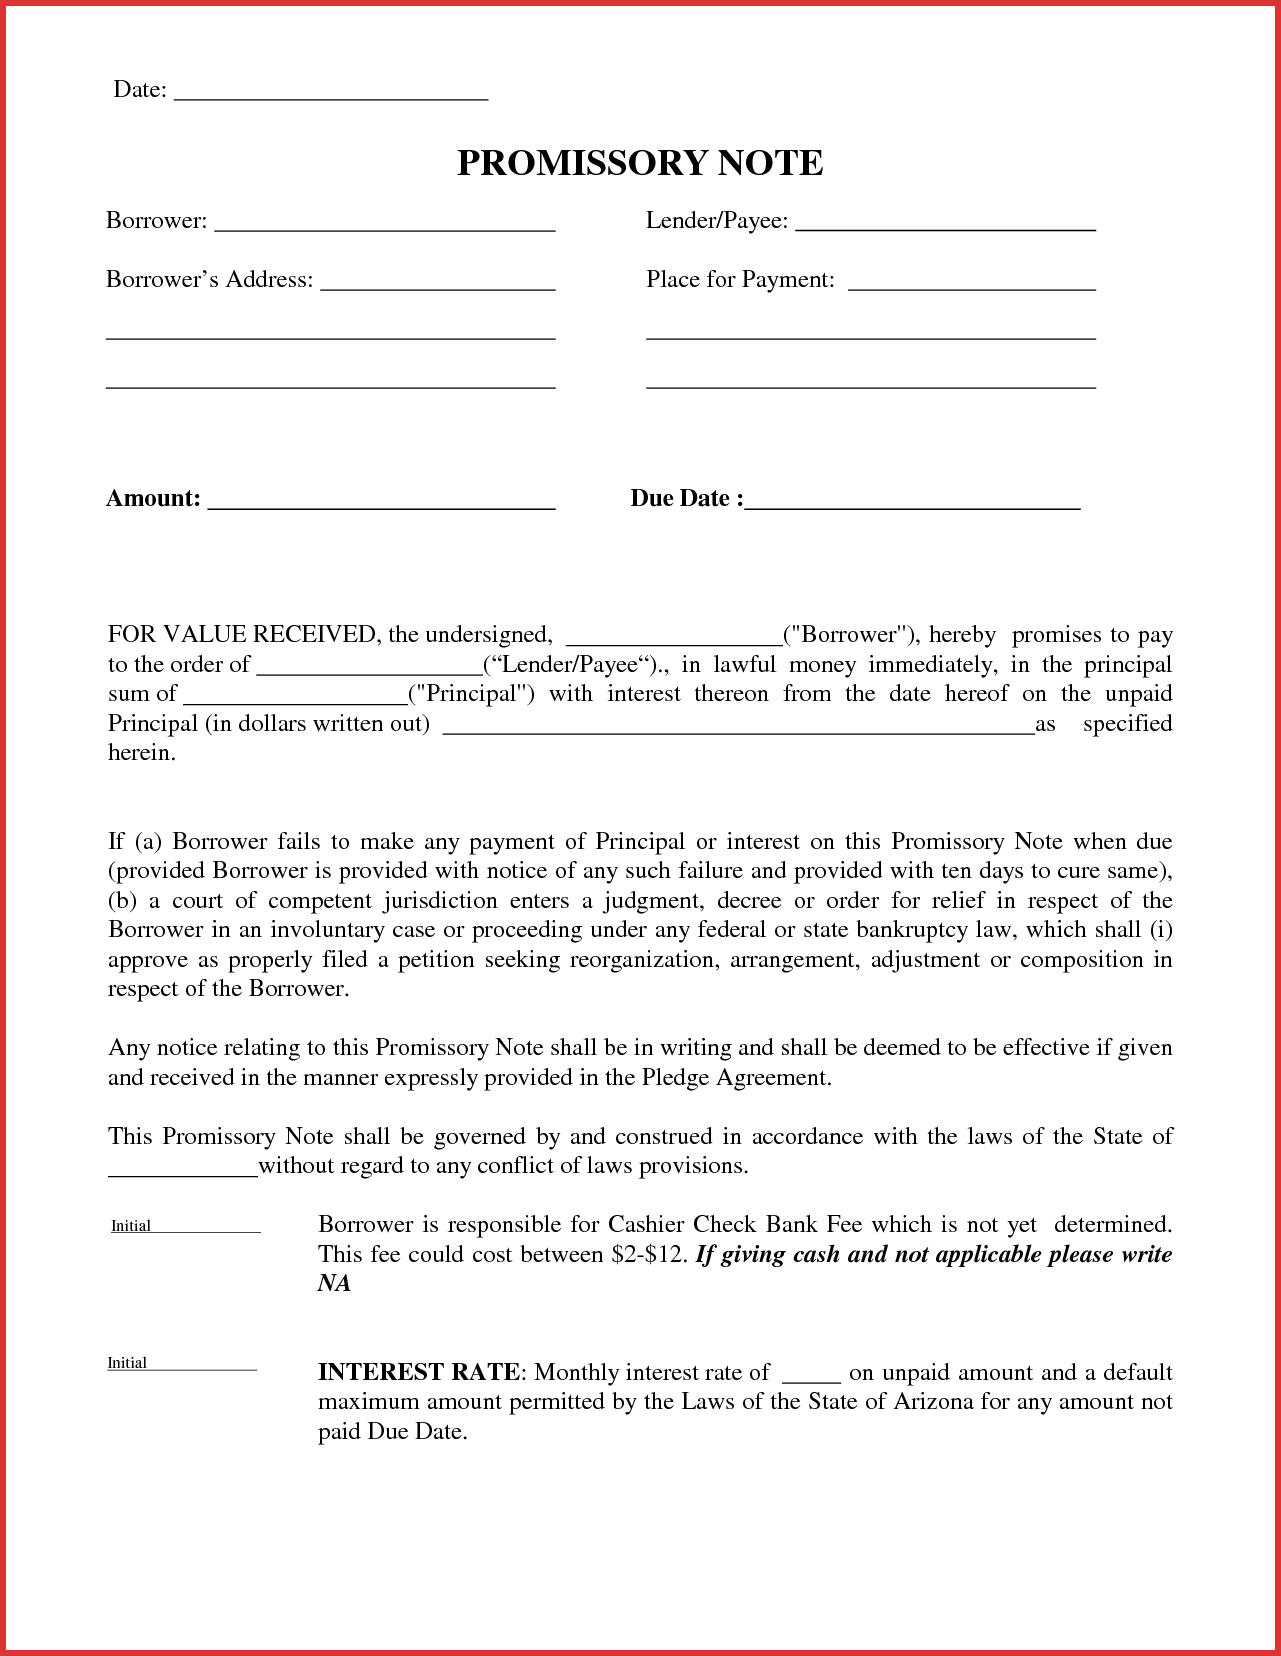 Repayment Agreement Letter Template - How to Write A Payment Agreement Letter Gallery Letter format